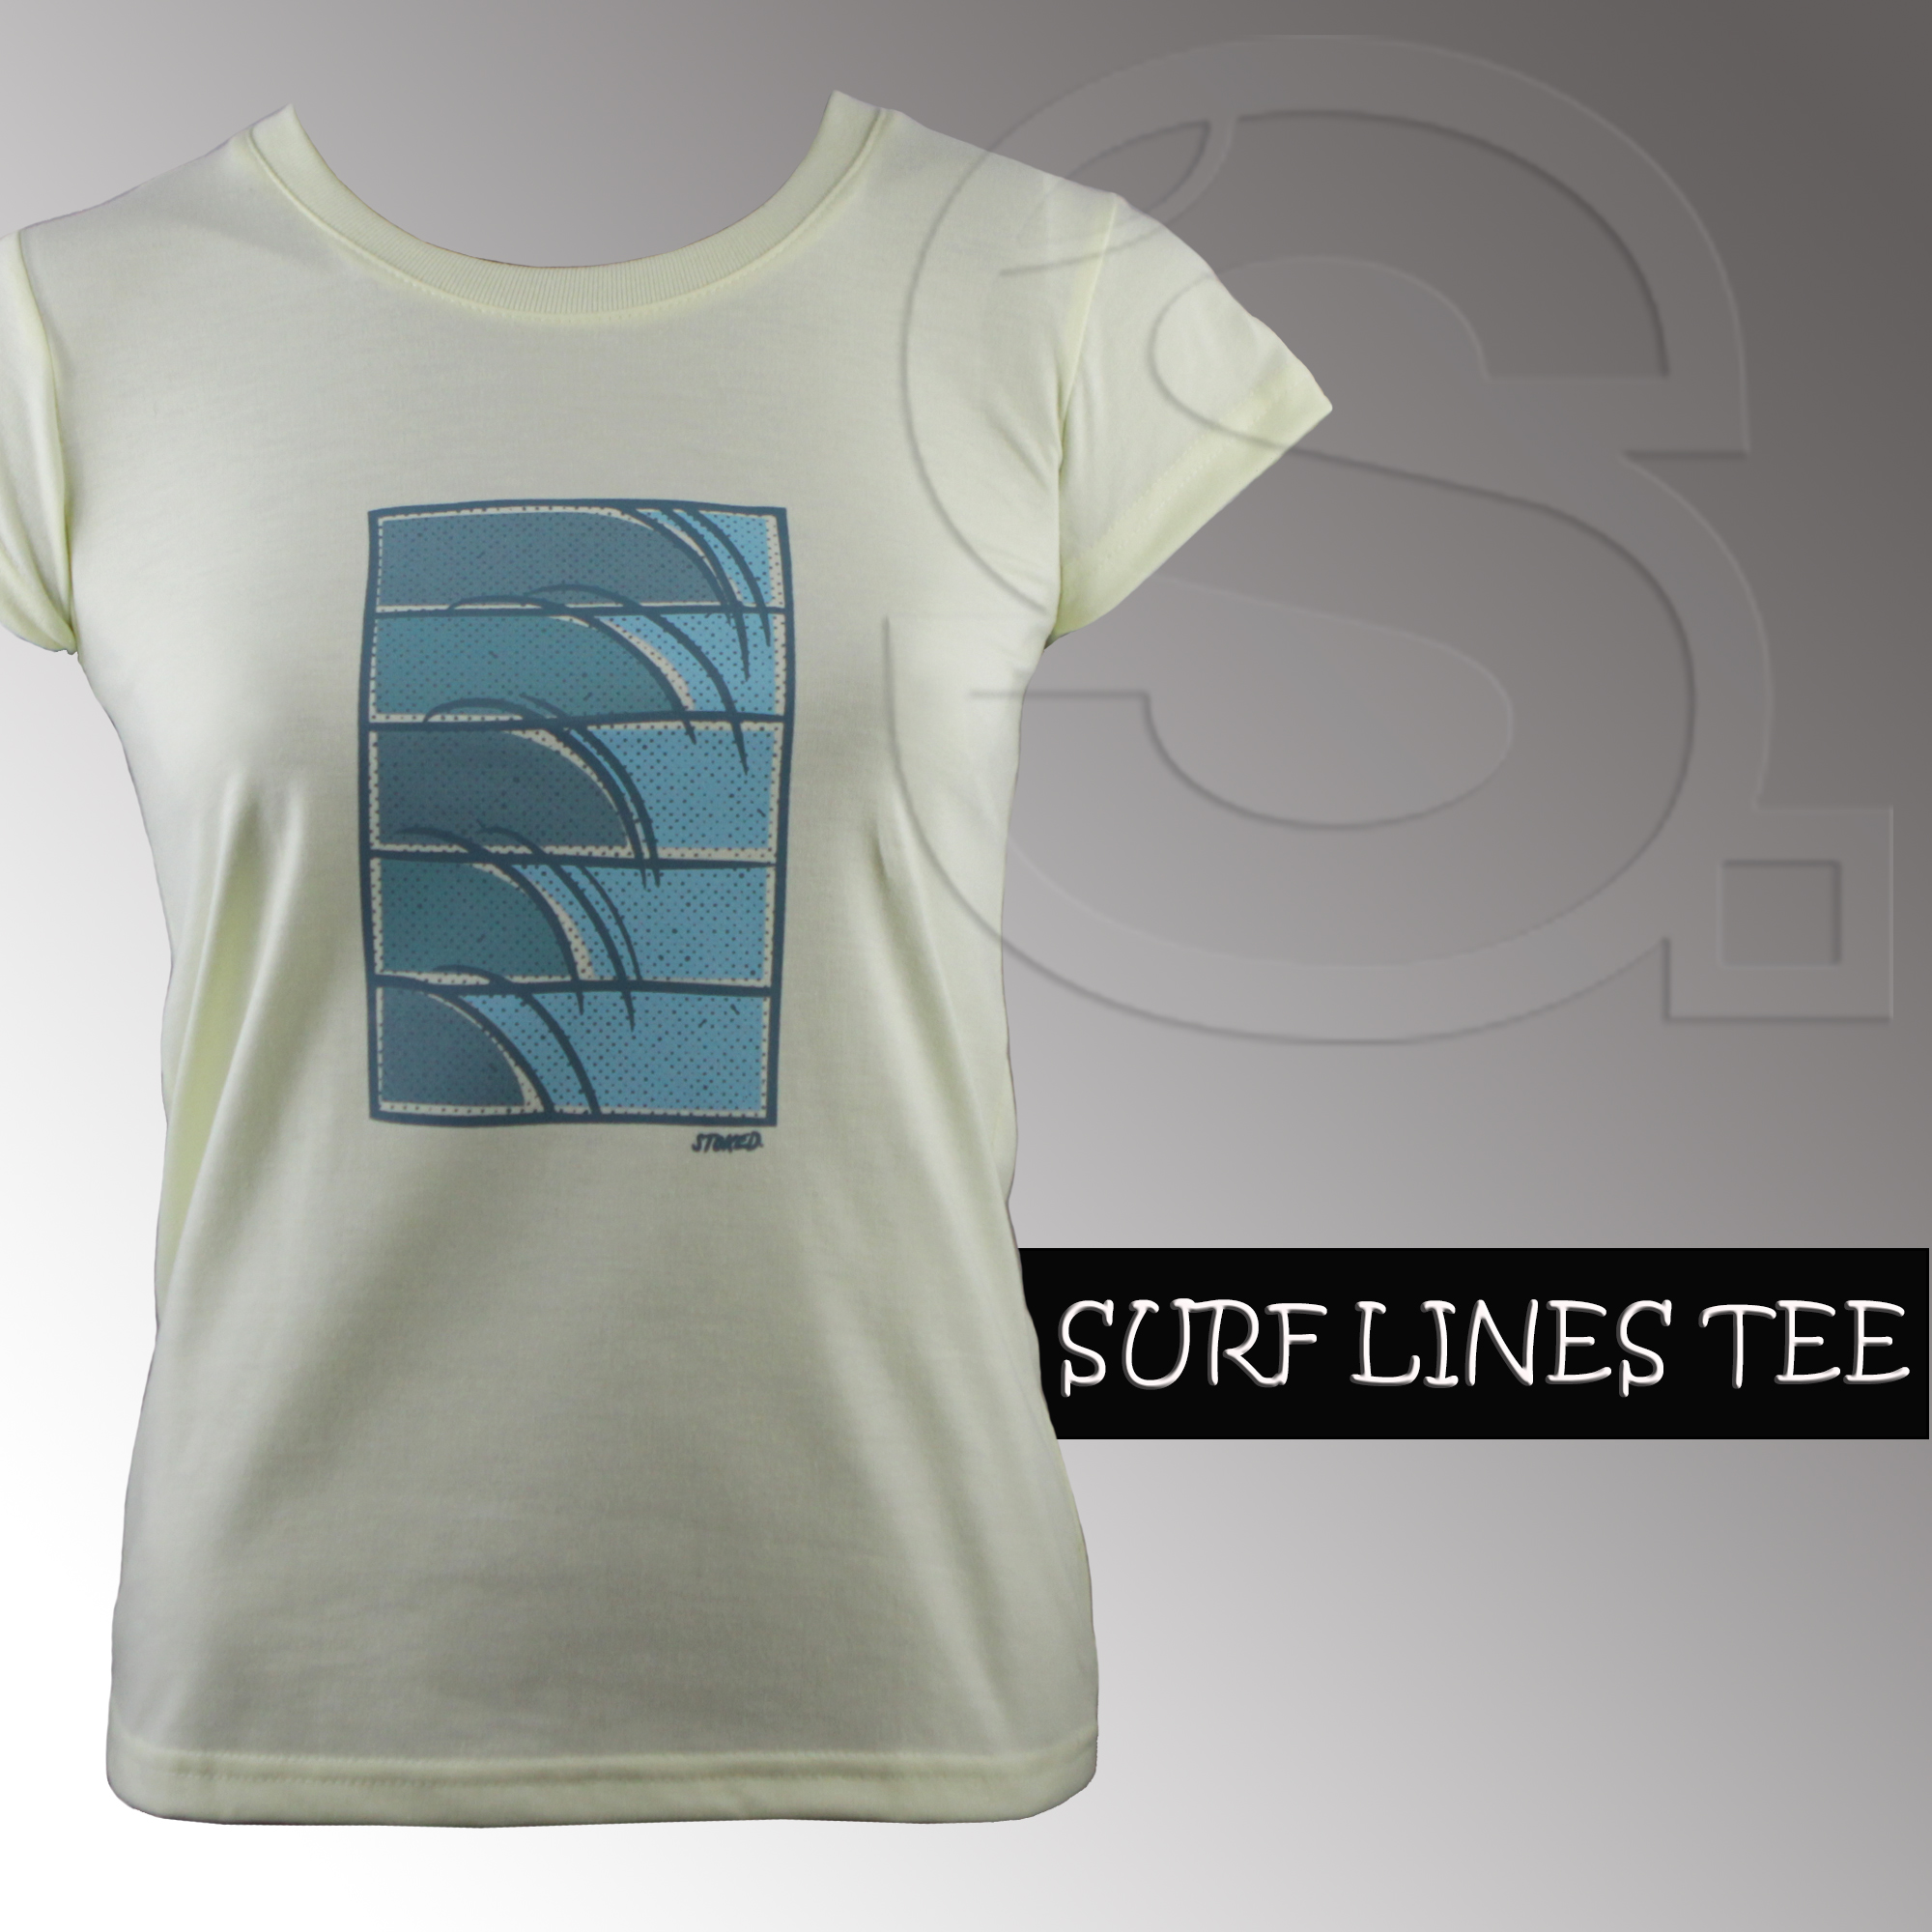 Surf Lines Tee Php 549.75